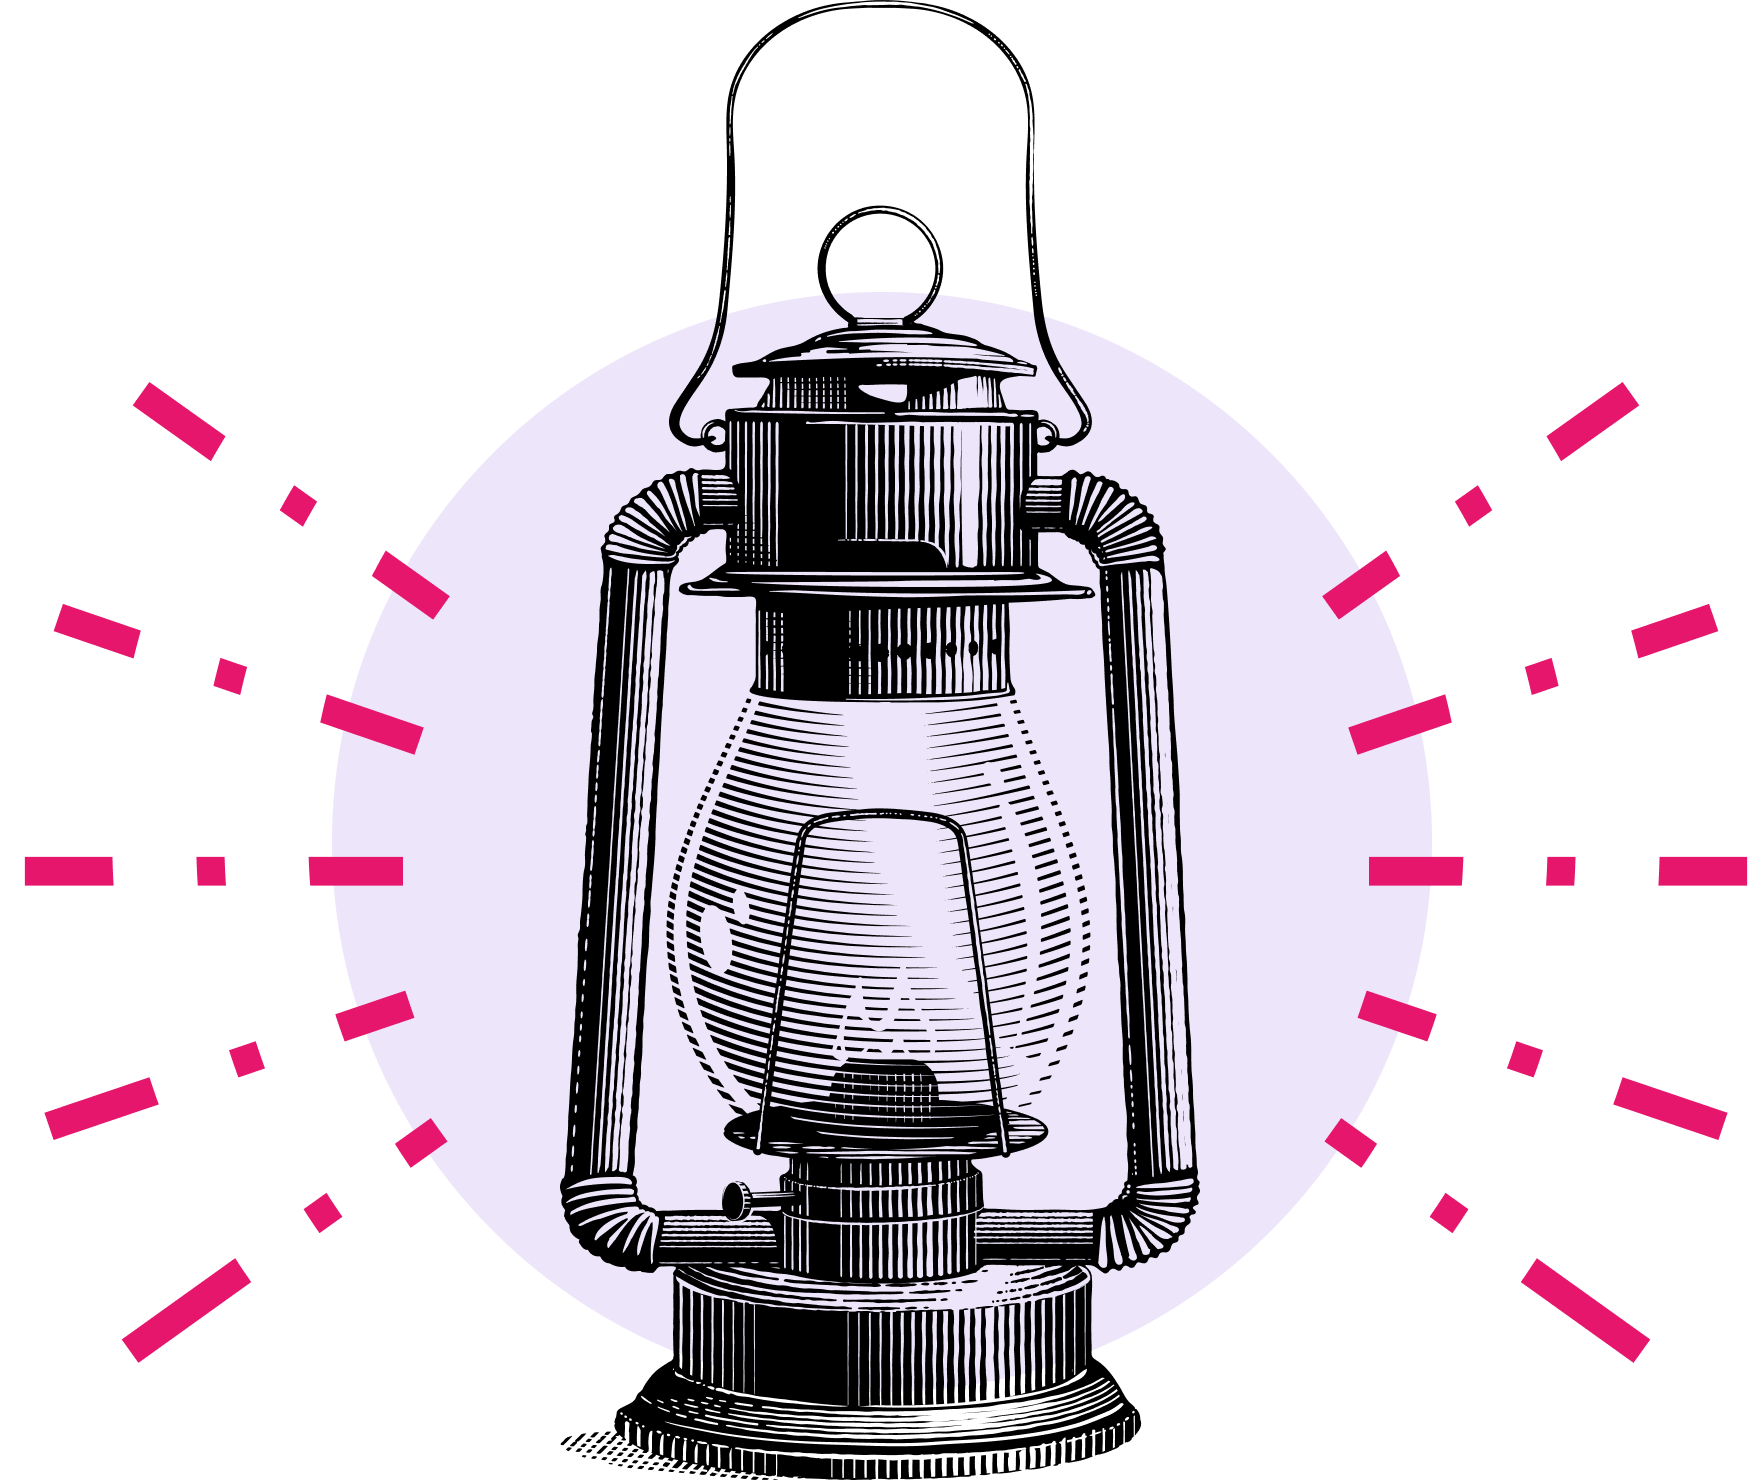 Mission and Values Lantern